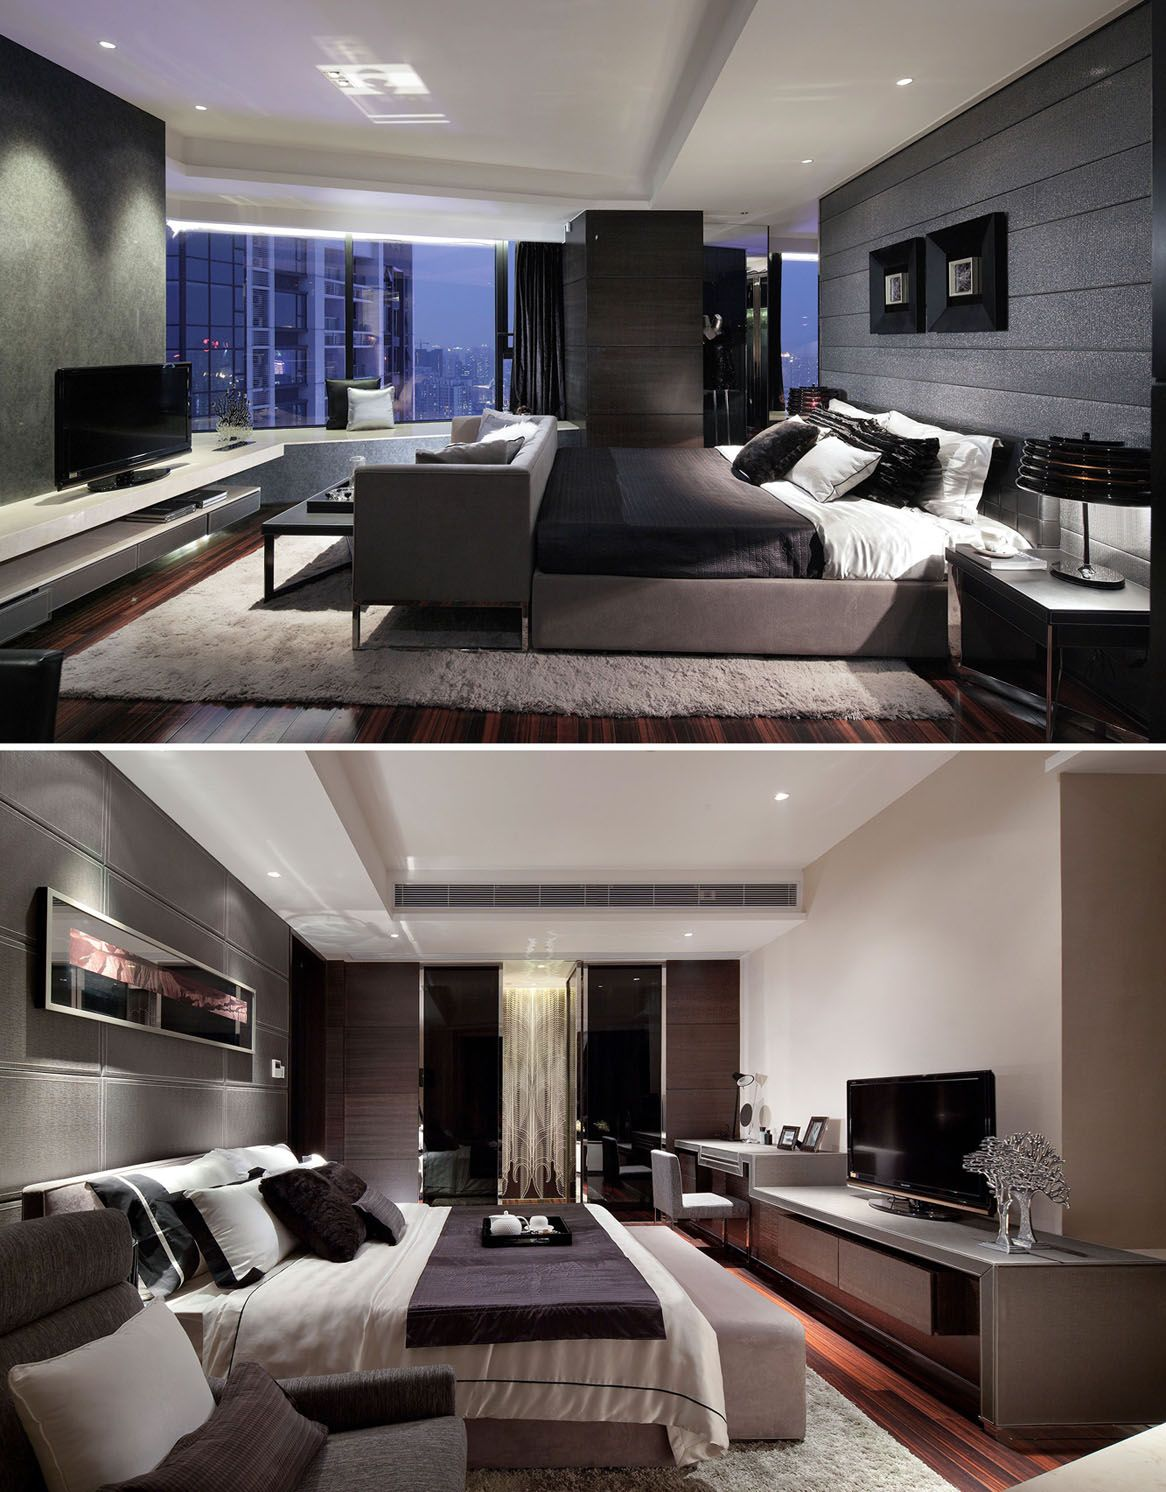 Hotel Room Designs: Love The Hotel Chic Look Of These Bedrooms. Luxury Bedroom